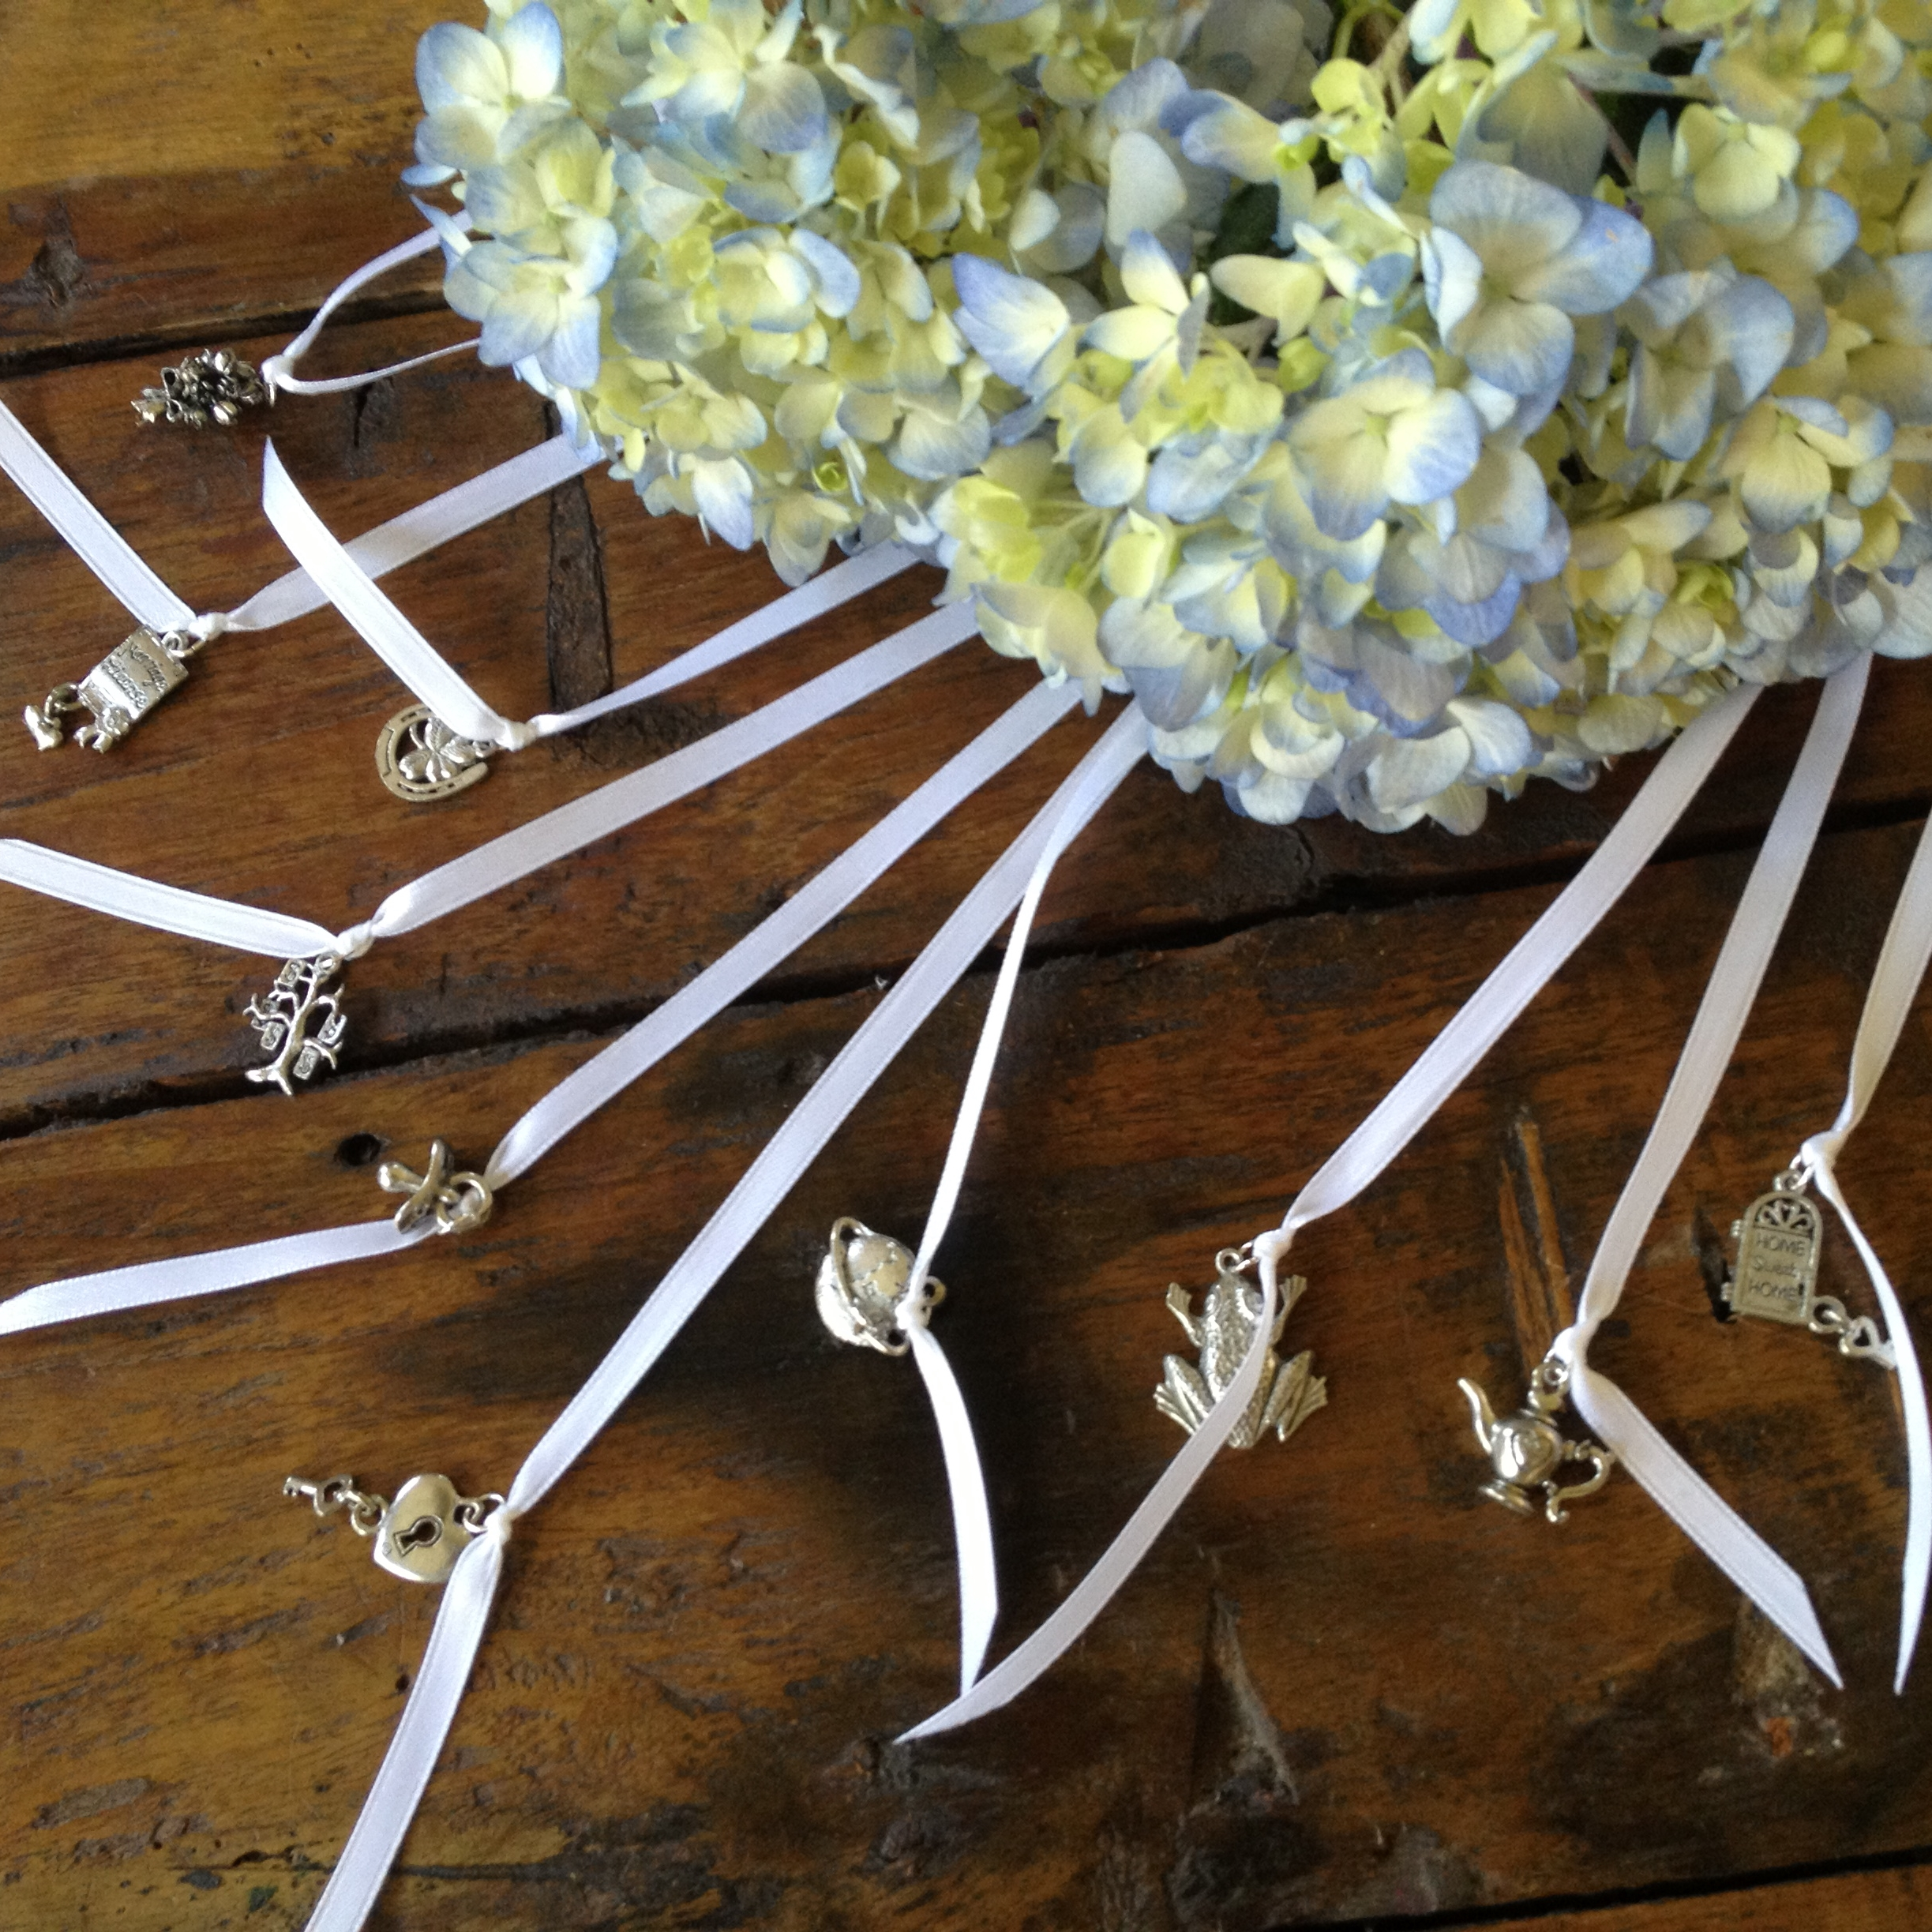 set of 10 wedding cake charms wedding cake charms and cake pulls for bridesmaid luncheon. Black Bedroom Furniture Sets. Home Design Ideas